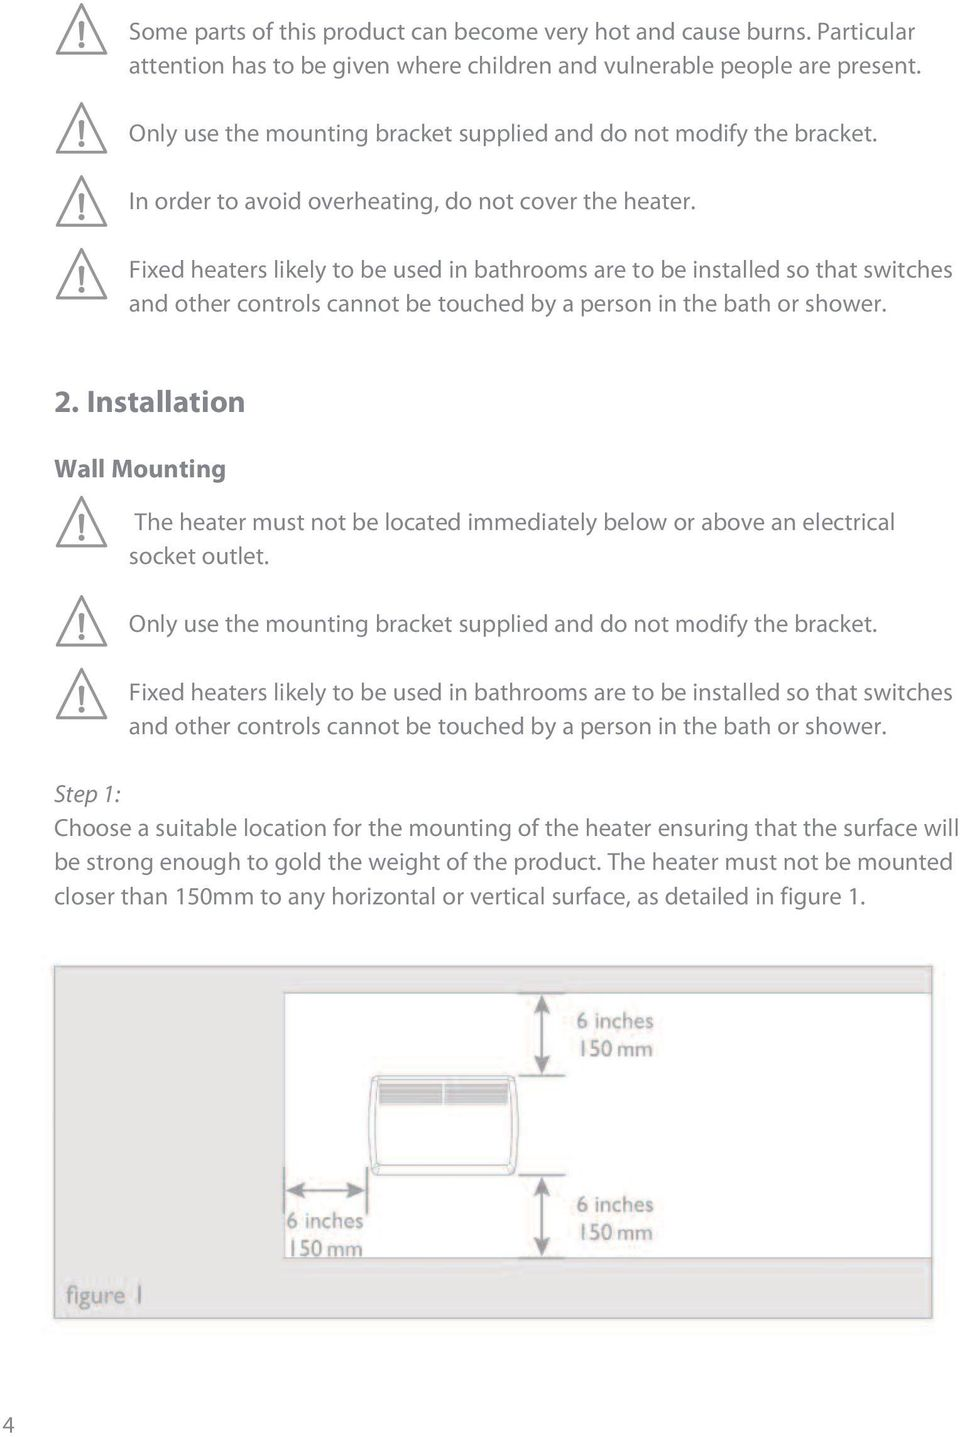 Fixed heaters likely to be used in bathrooms are to be installed so that switches and other controls cannot be touched by a person in the bath or shower. 2.